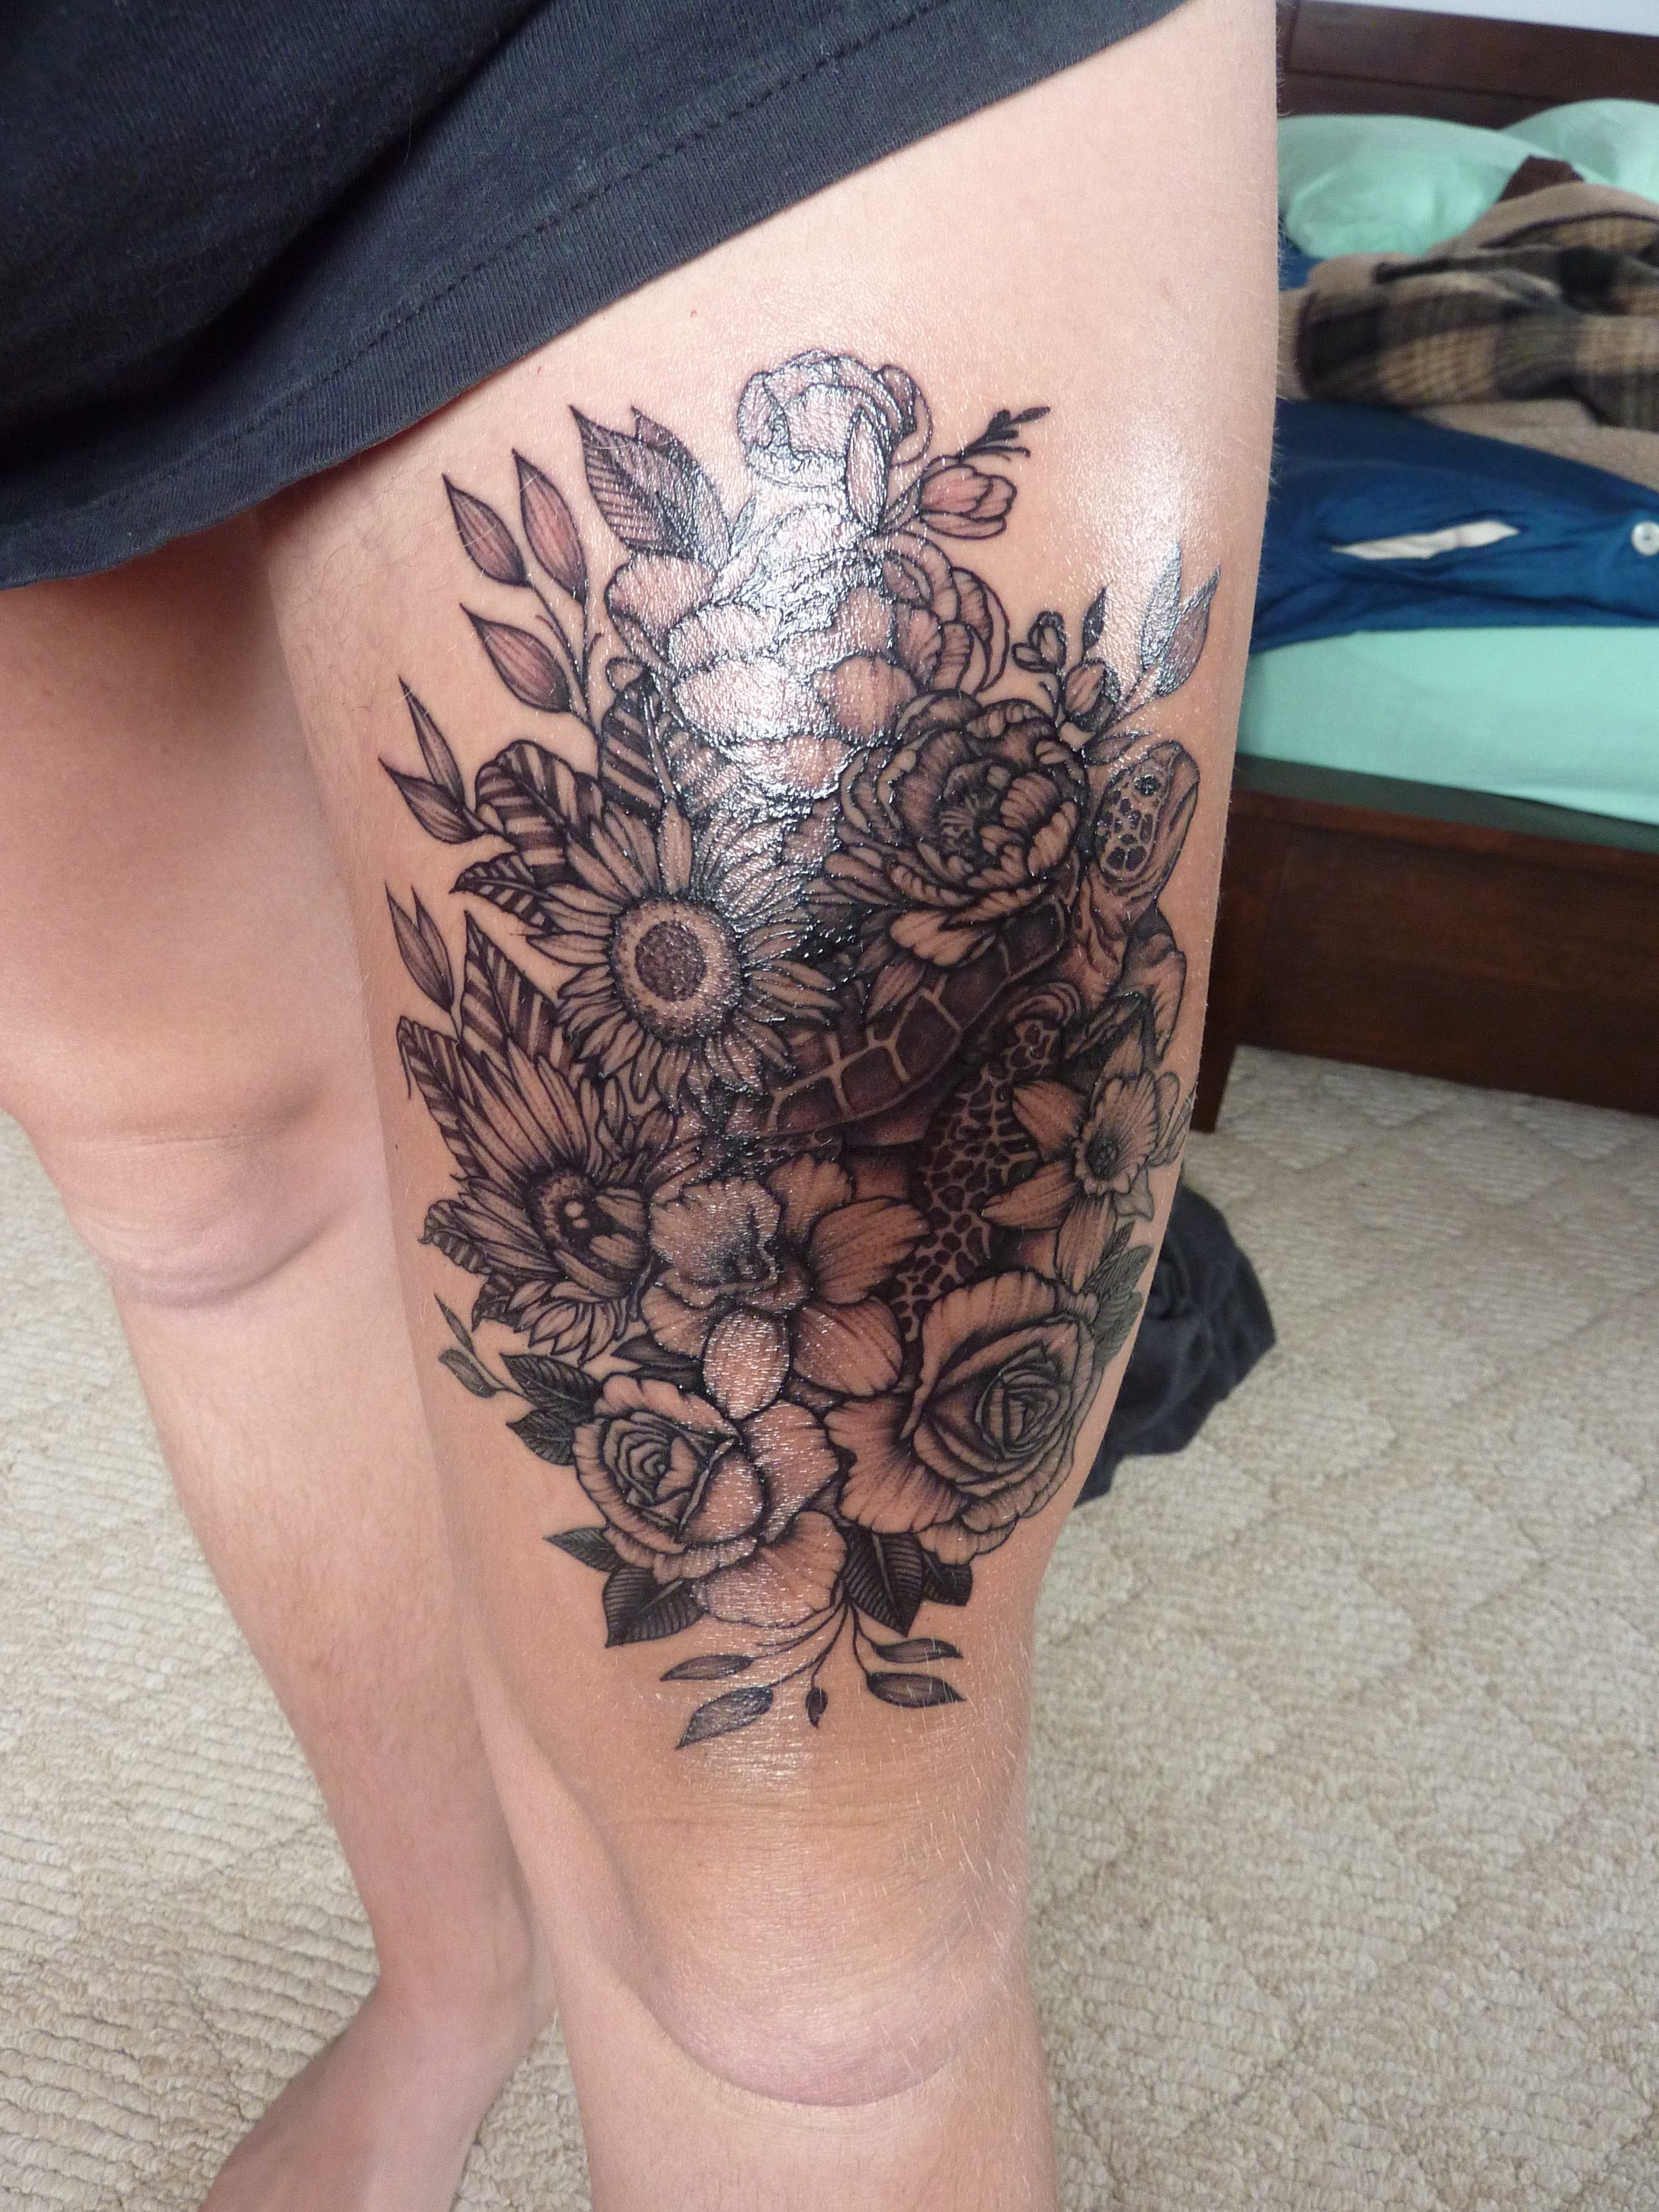 The 5 Stages Of Grief And Your New Tattoo The Green Writing Desk